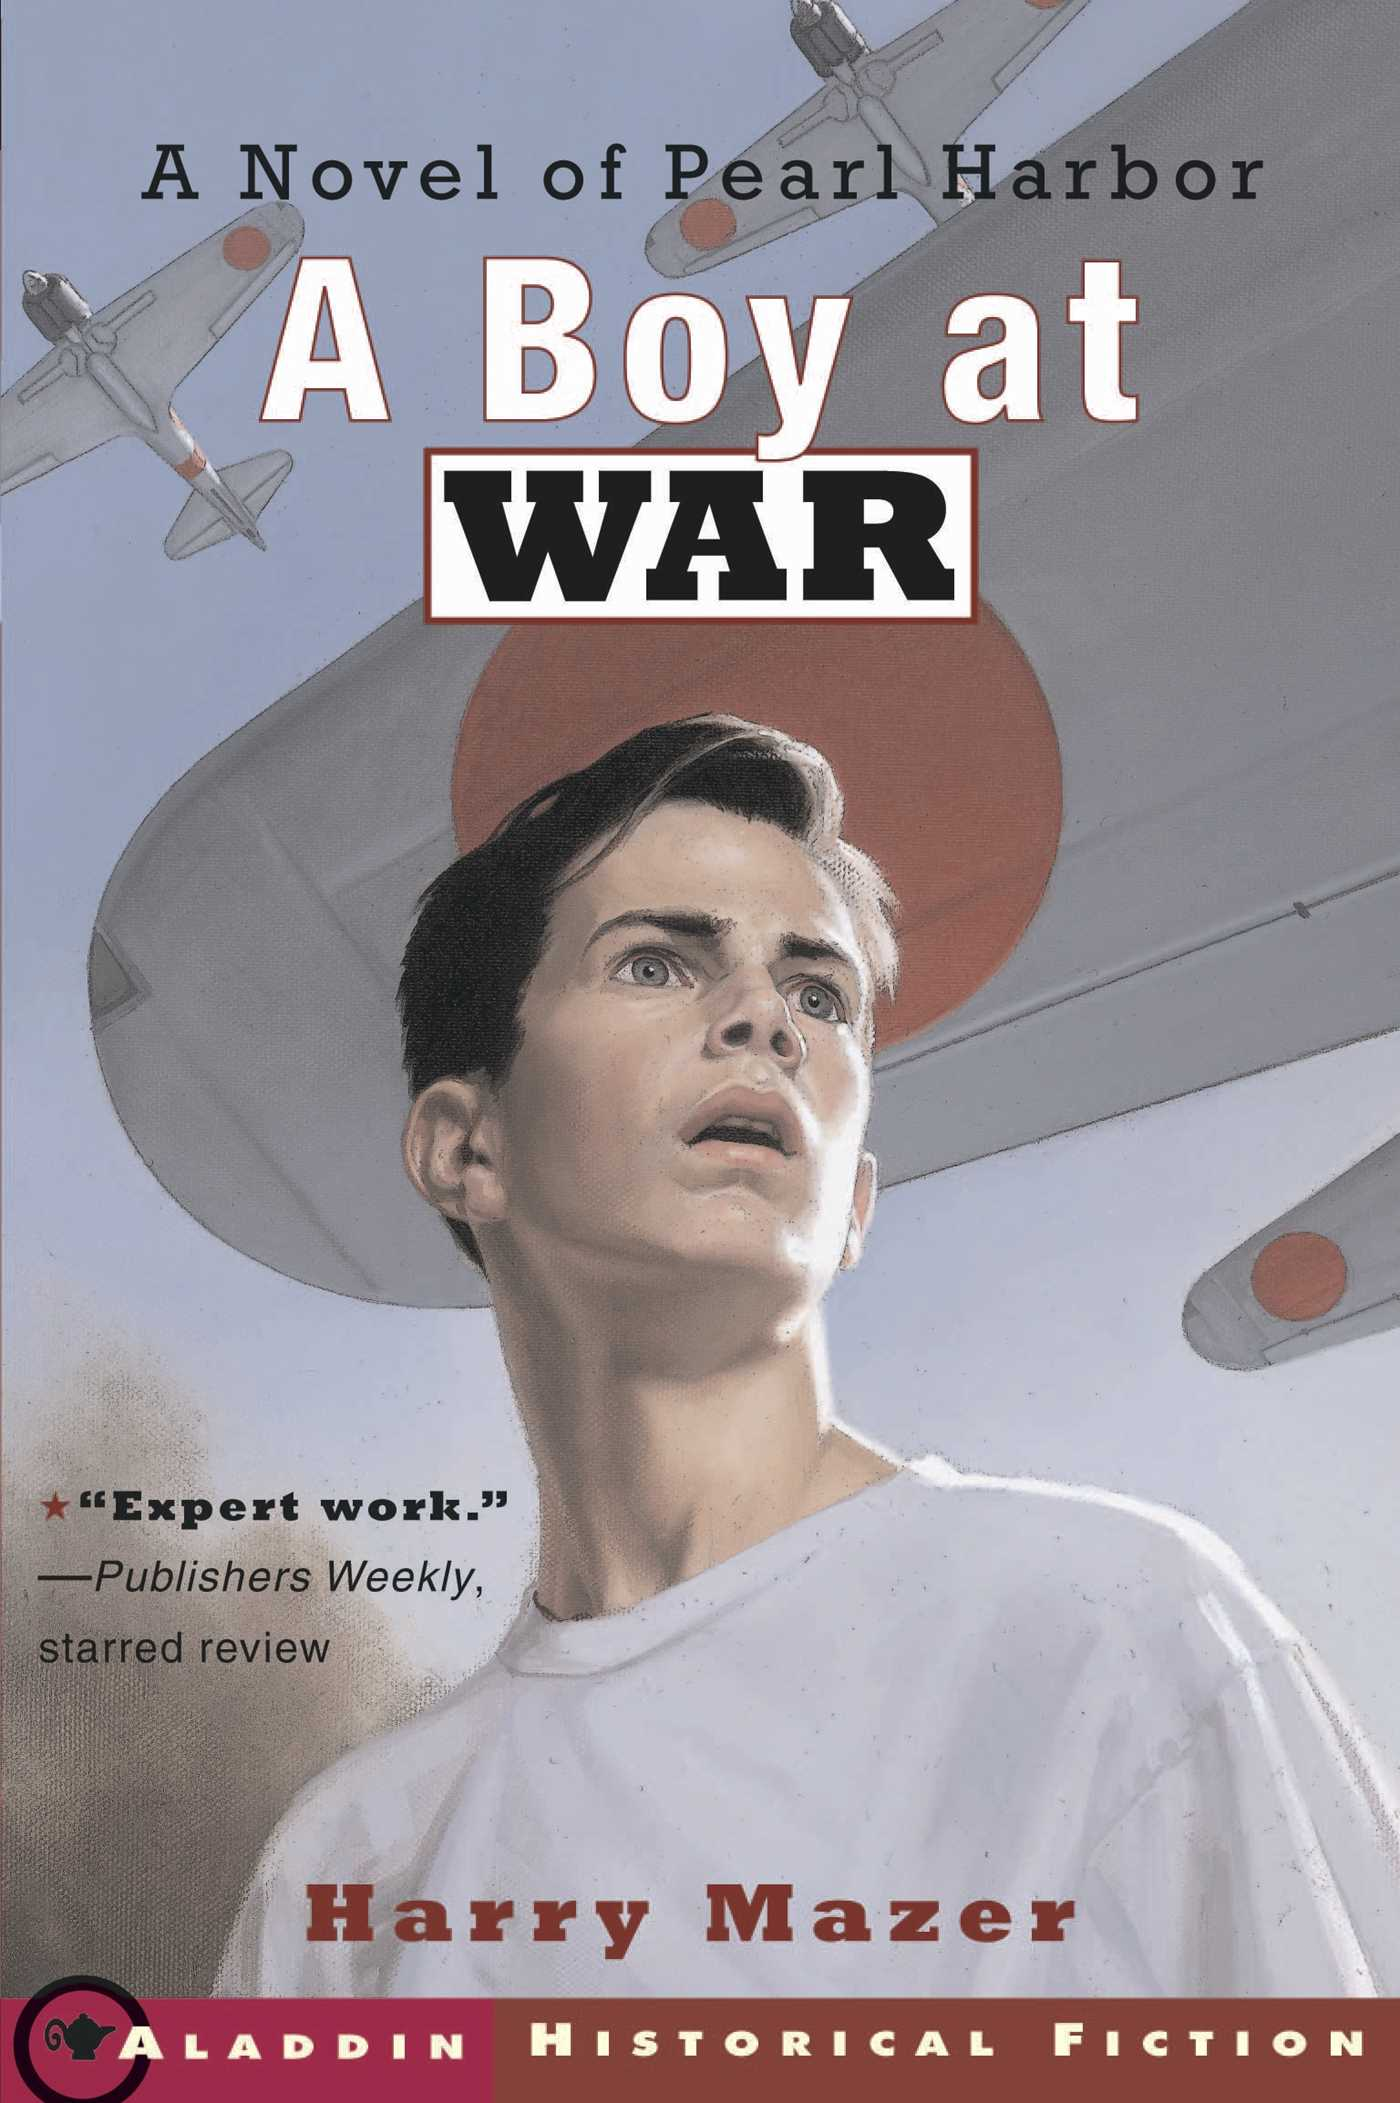 thesis harry mazer a boy at war A boy at war by harry mazer no description by john rodriguez on 19 october 2010 tweet comments (0) please log in to add your comment.